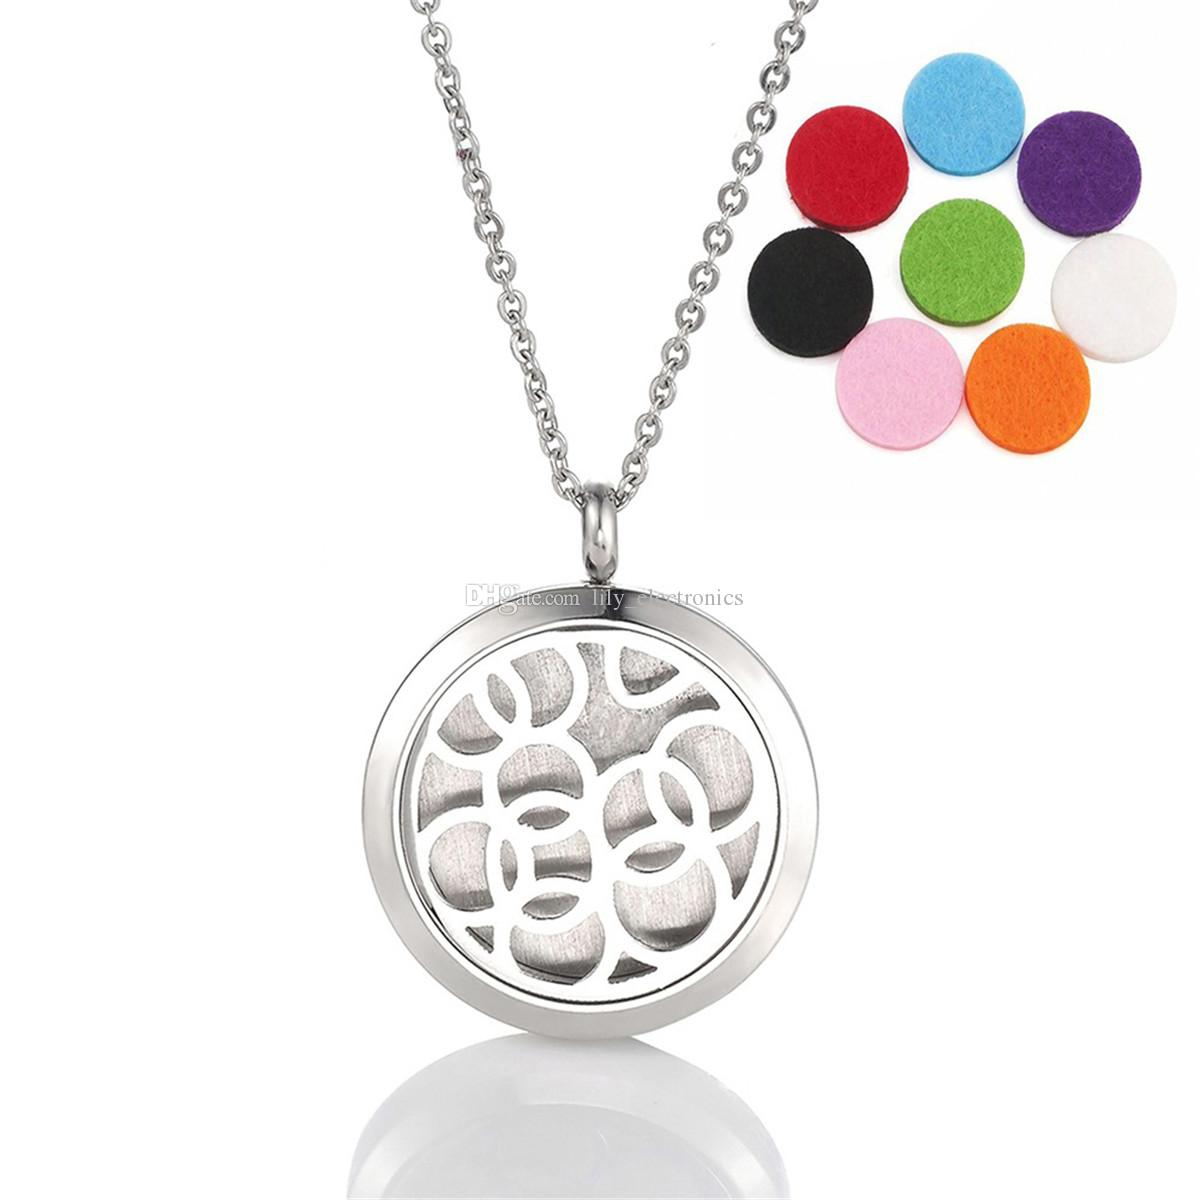 The Olympic Rings Aromatherapy Pendant Diffuser Essential Oil 316L Stainless Steel Locket Necklace with 8 Refill Pads